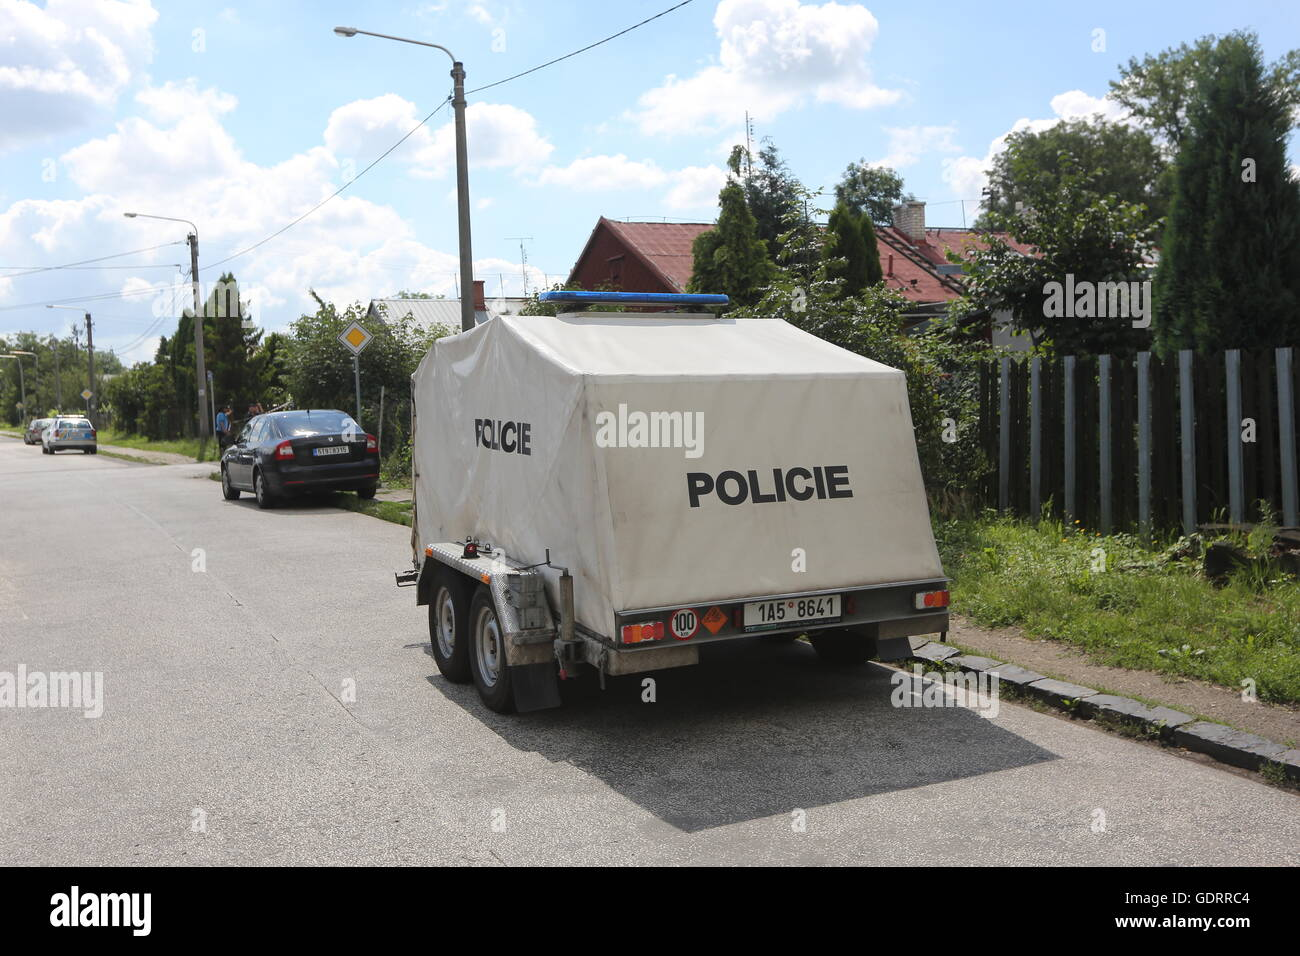 Ostrava, Czech Republic. 20th July, 2016. Police shot dead debtor who shot and wounded distraint officer and woman - Stock Image